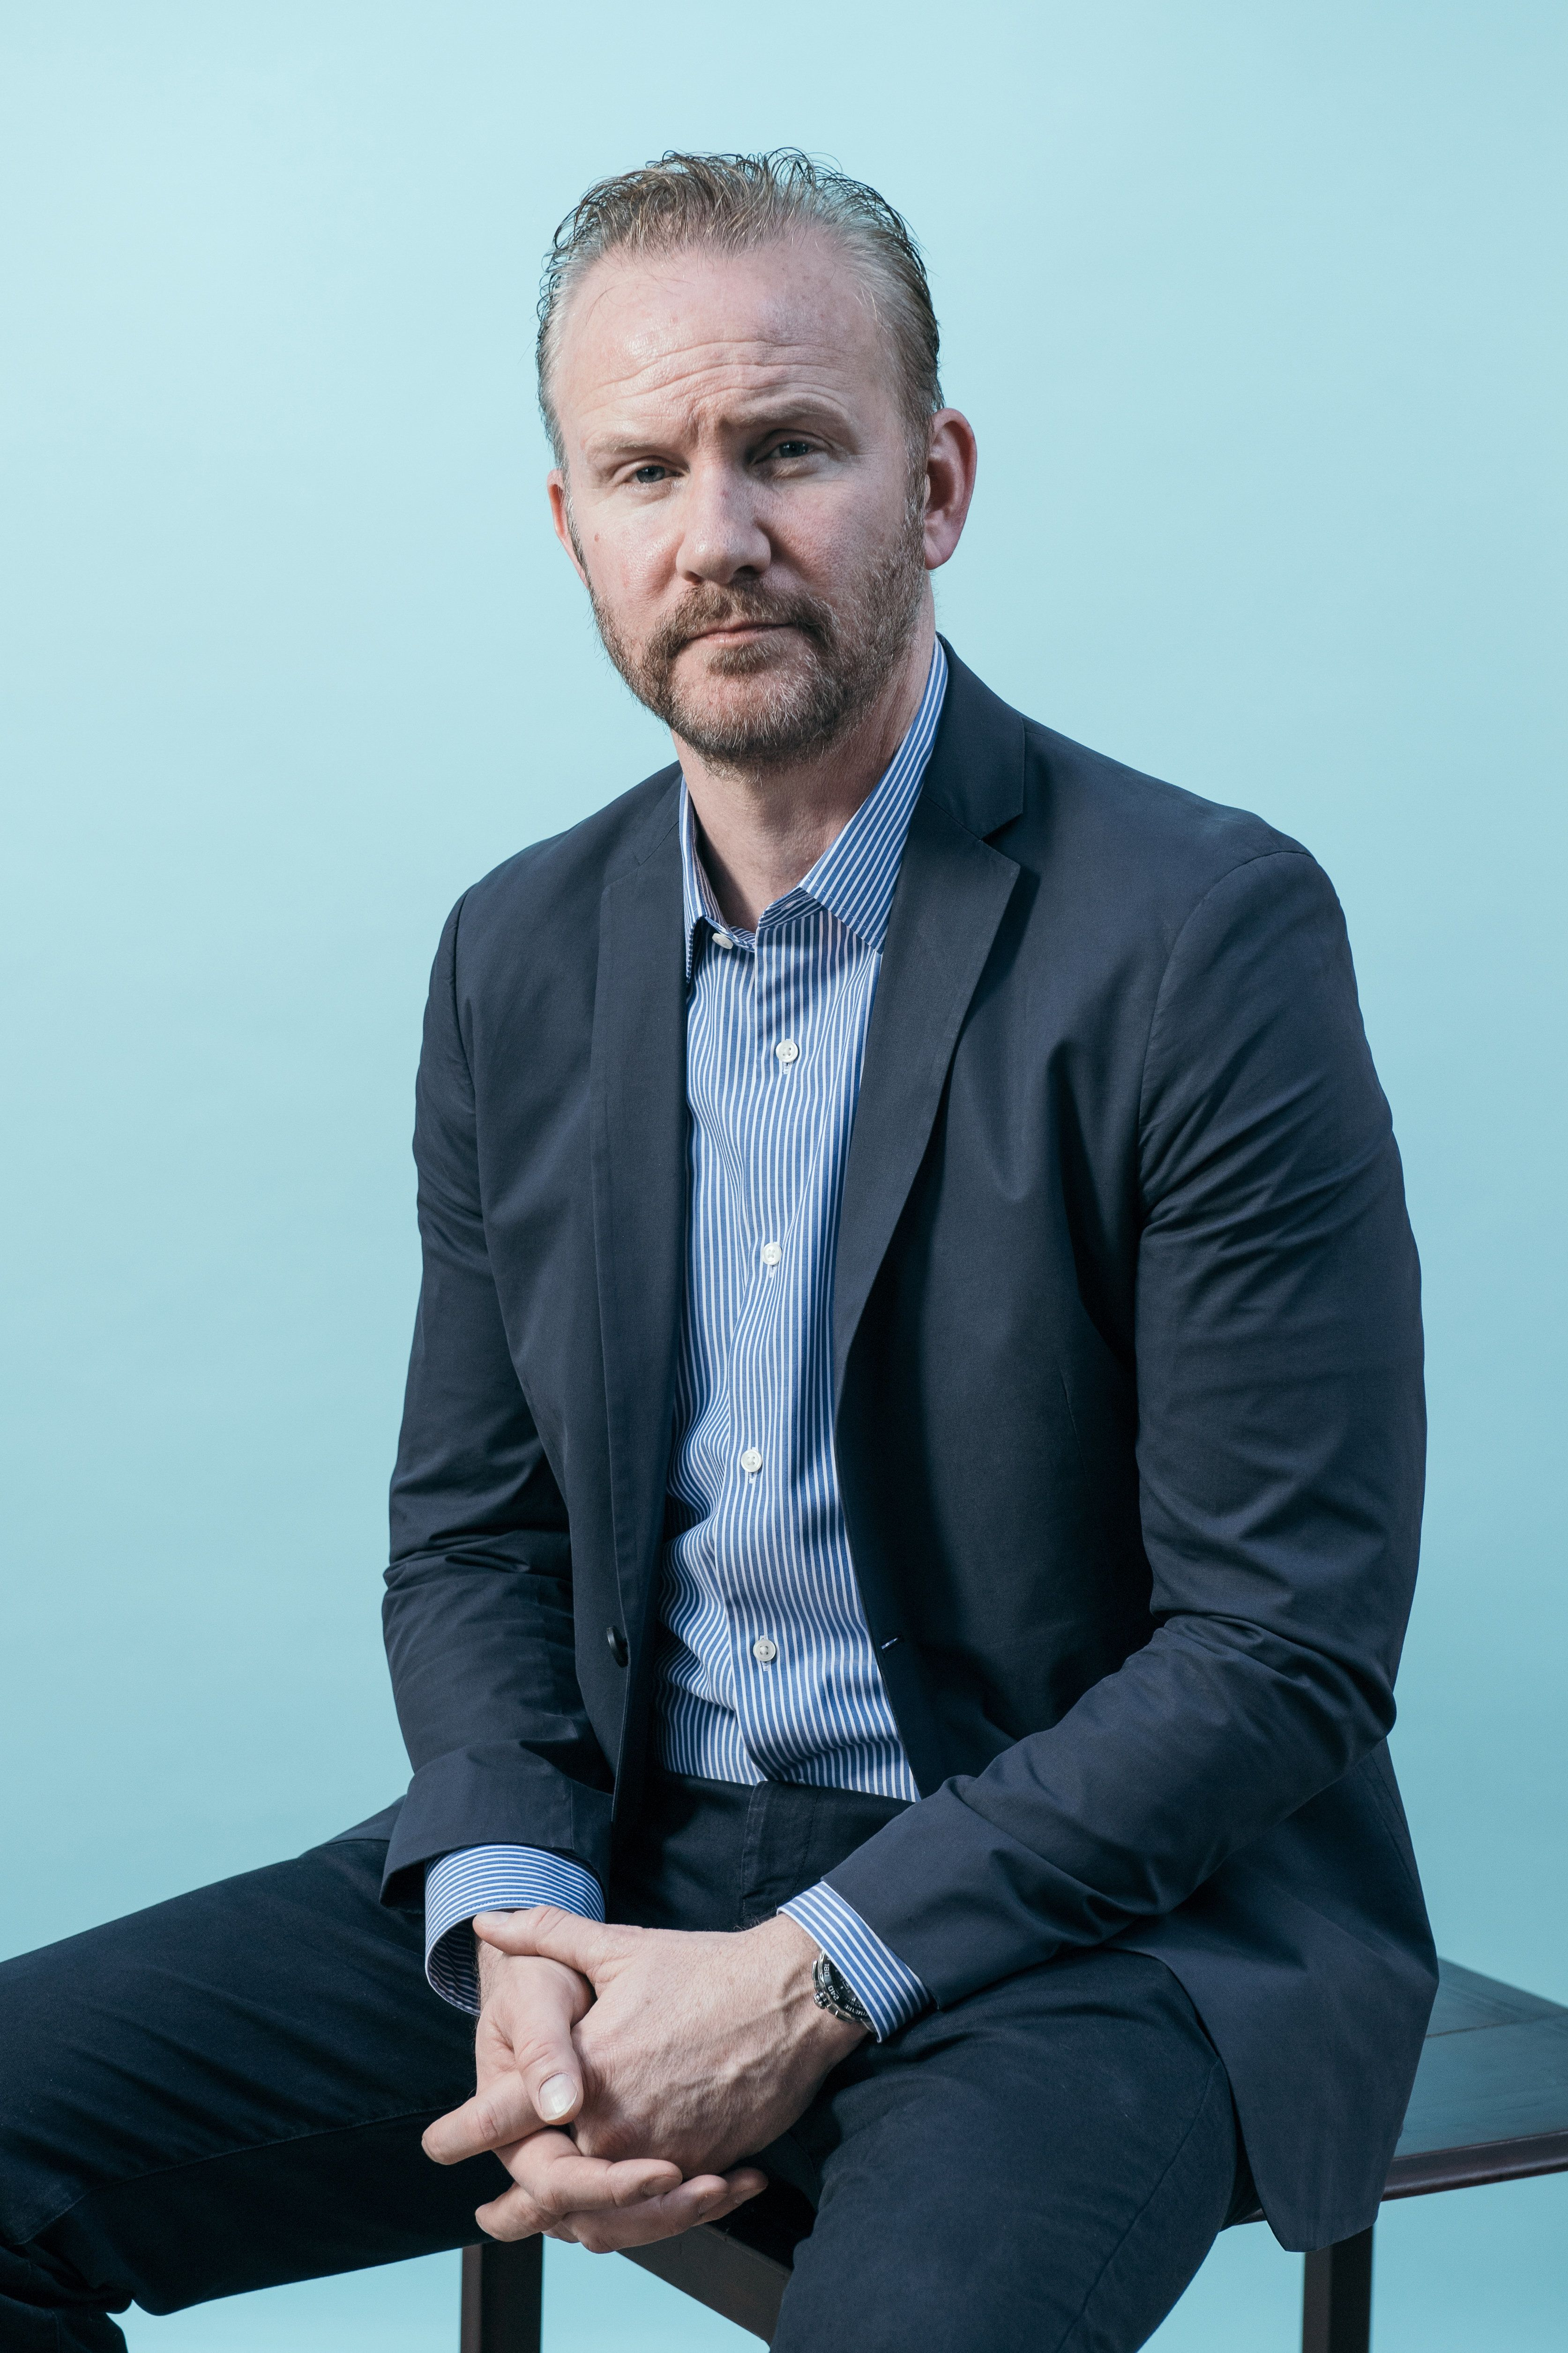 DUBAI, UNITED ARAB EMIRATES - DECEMBER 11:  Morgan Spurlock poses during a portrait session at the 14th annual Dubai International Film Festival held at the Madinat Jumeriah Complex on December 11, 2017 in Dubai, United Arab Emirates.  (Photo by Neilson Barnard/Getty Images for DIFF)